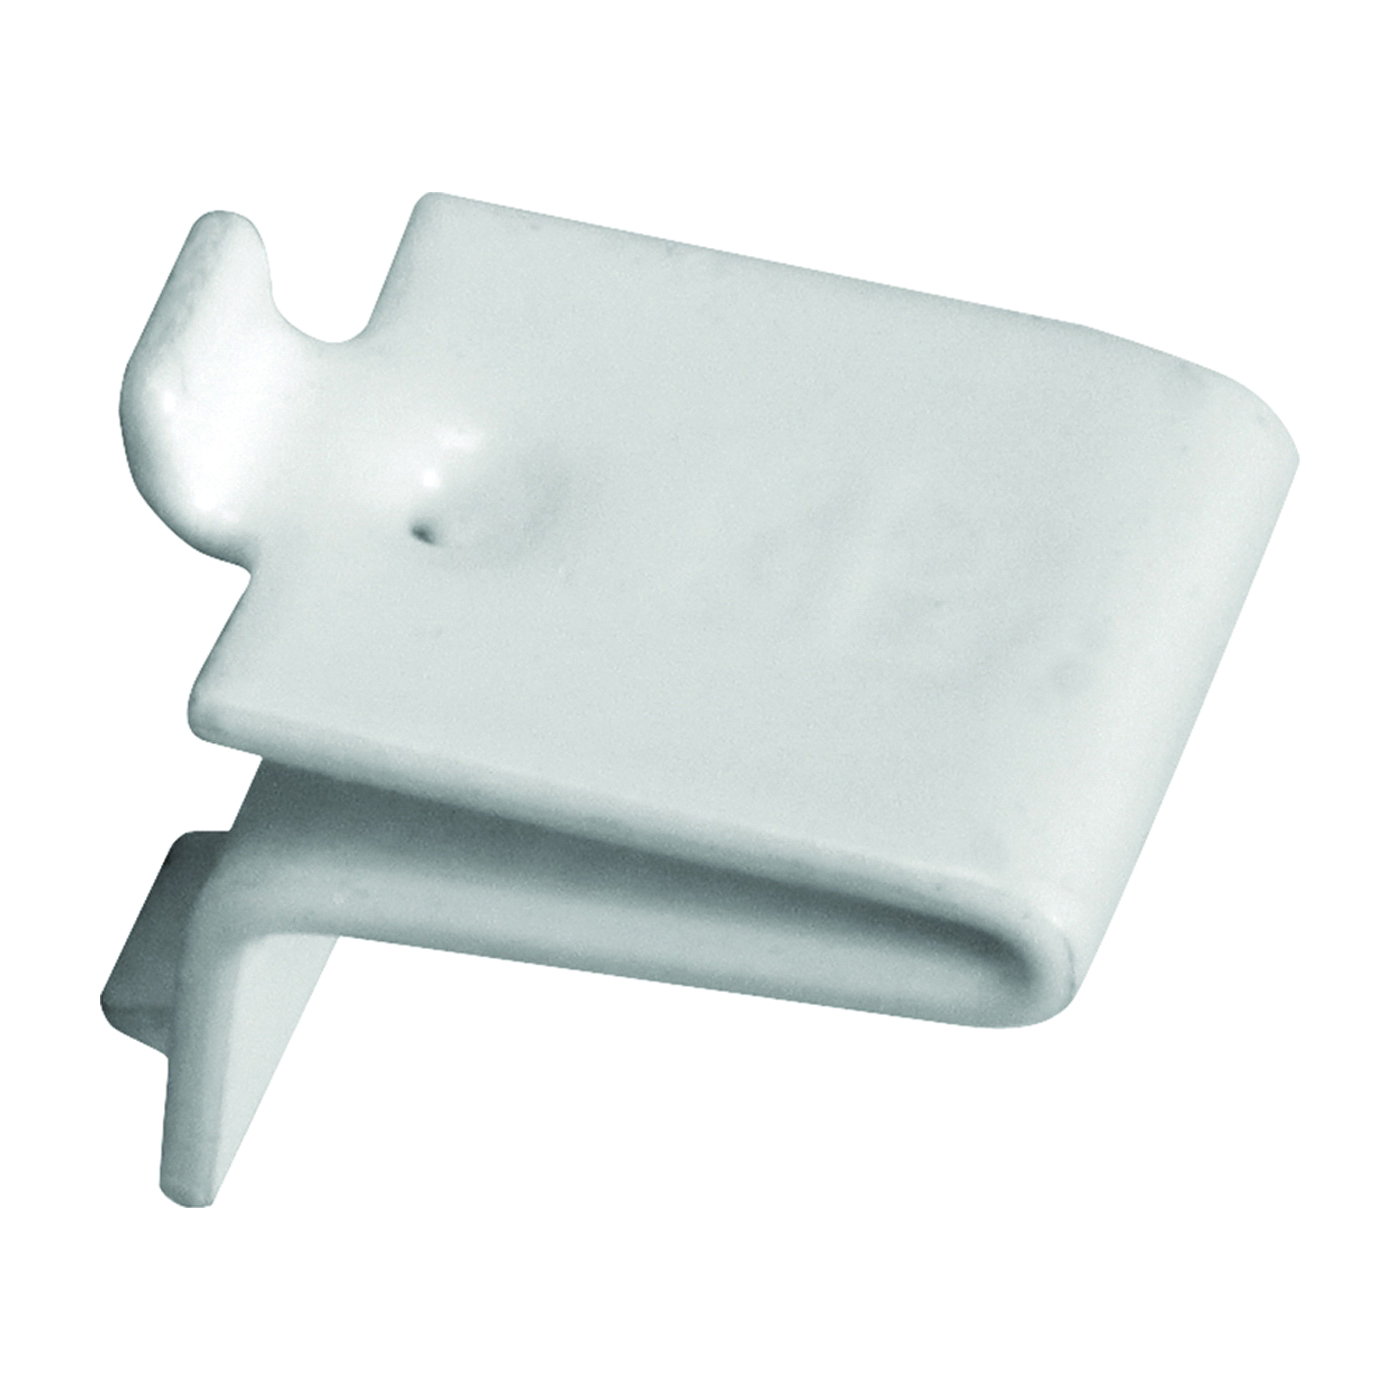 Picture of Knape & Vogt 256S P WH Pilaster Shelf Support Clip, Adjustable, Steel, White, 40, Mortise Mounting